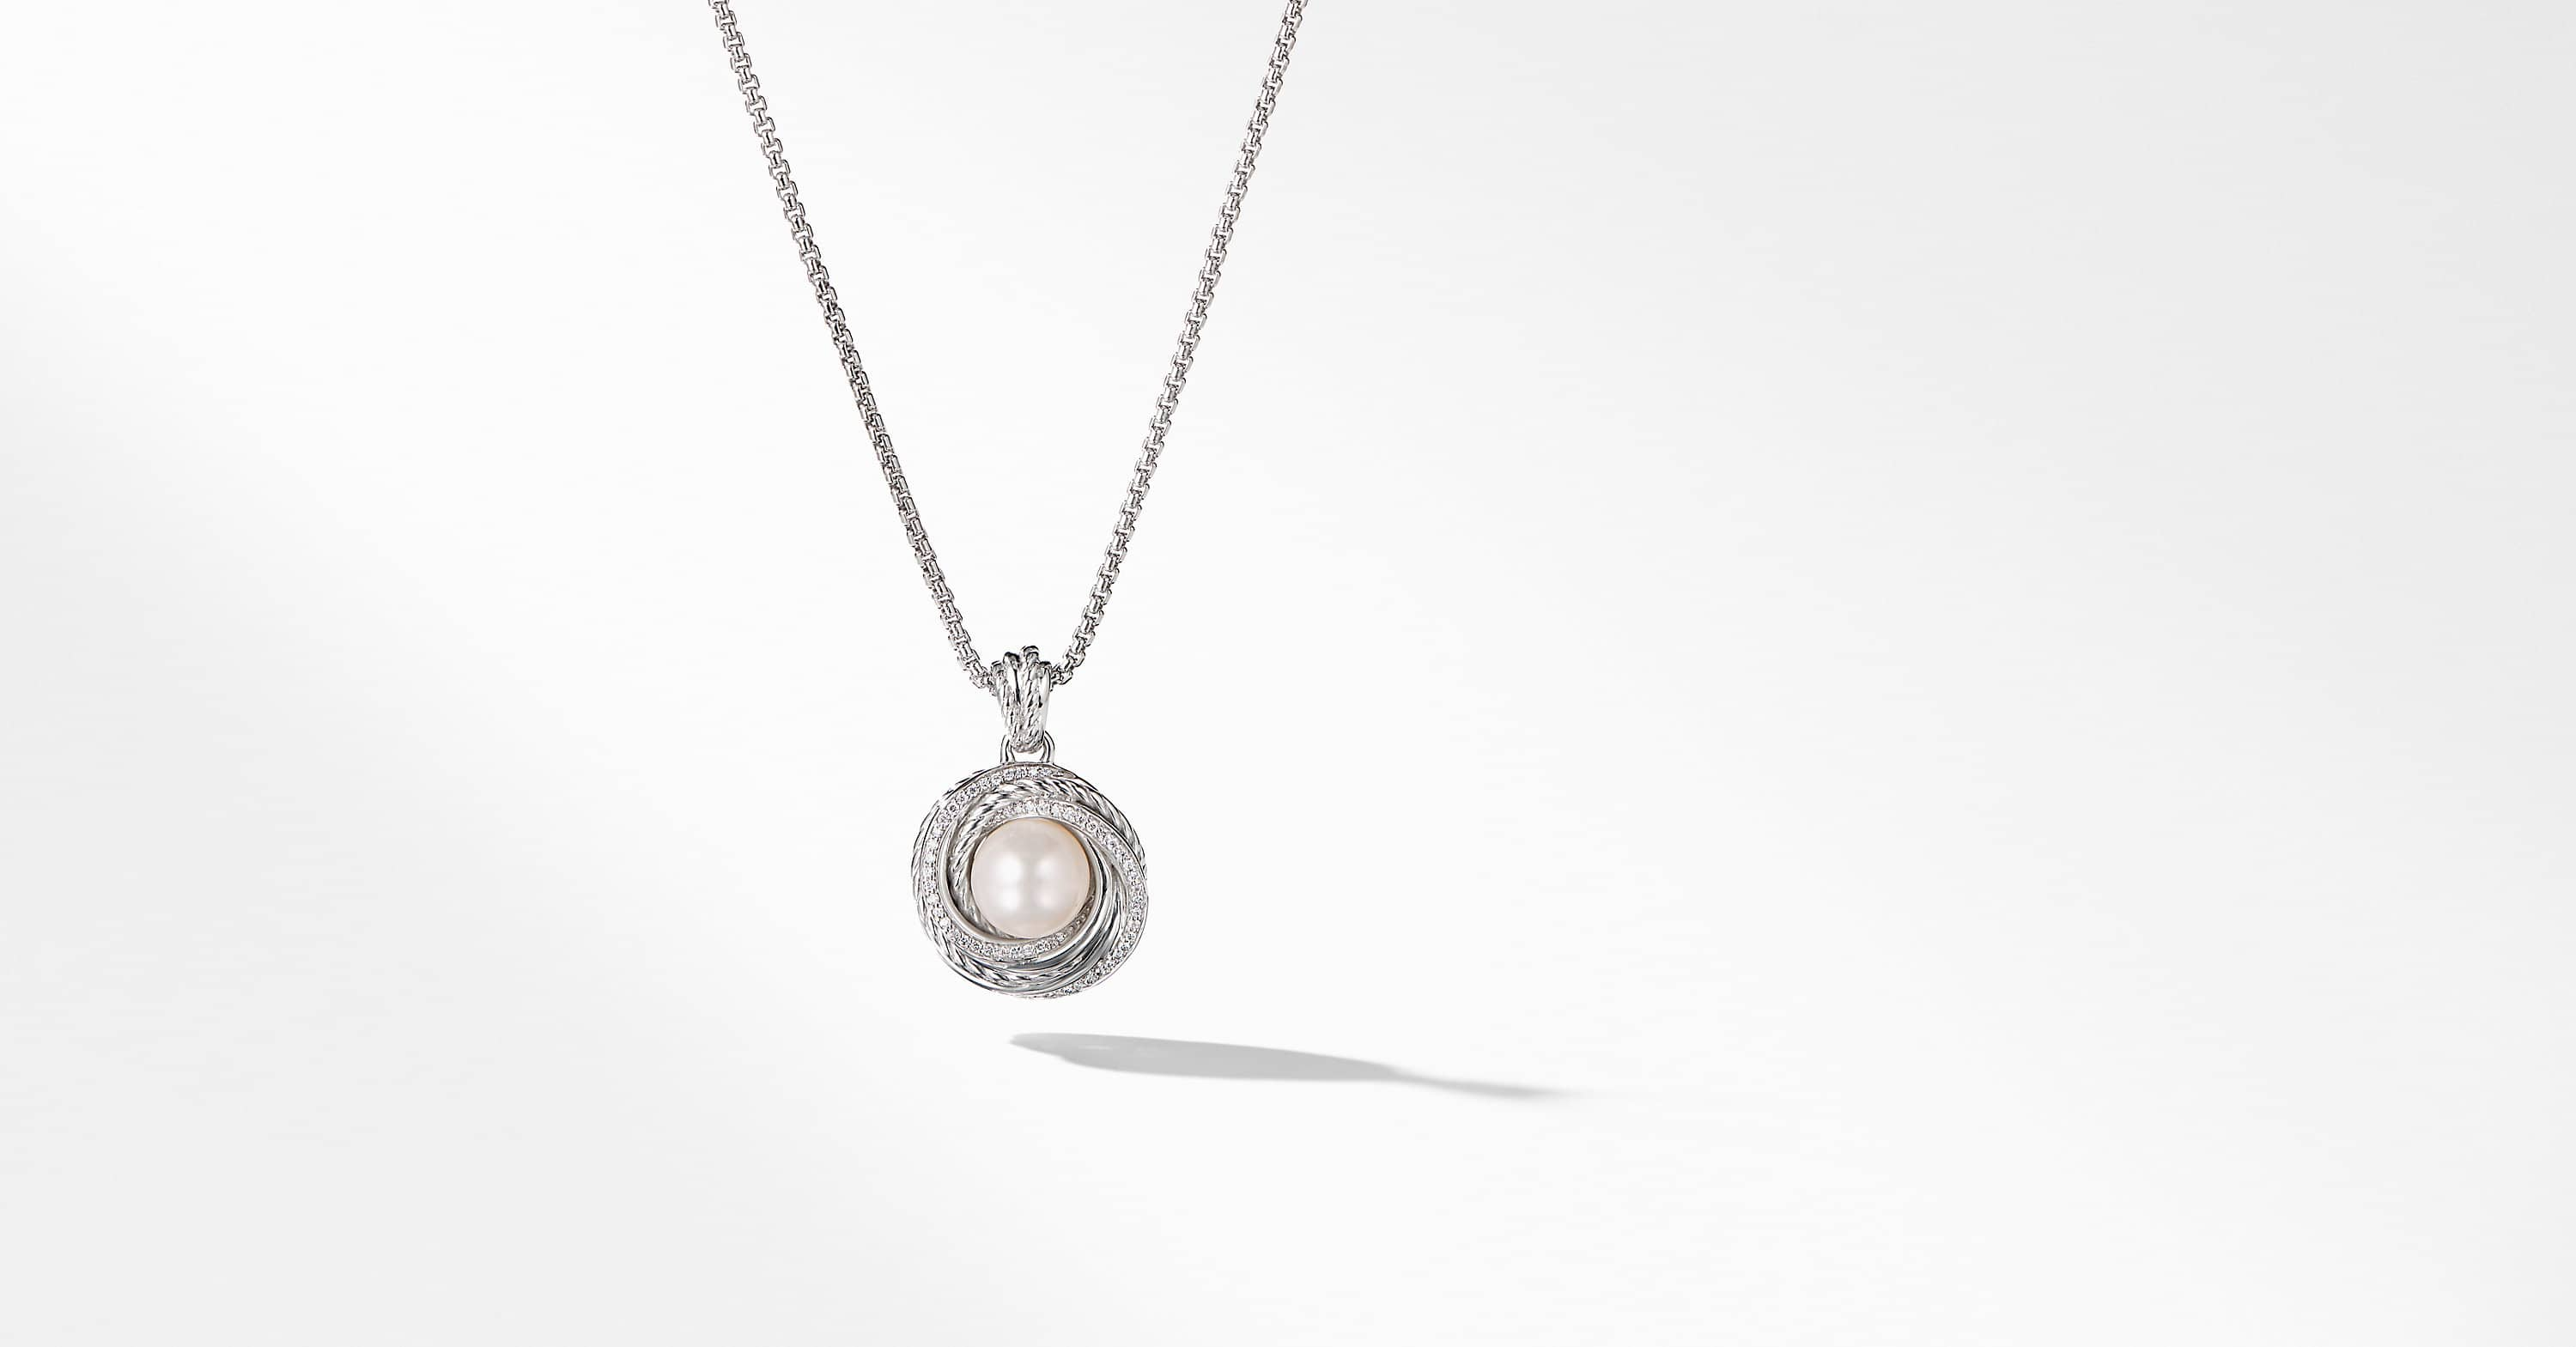 Crossover Pearl Pendant Necklace with Diamonds